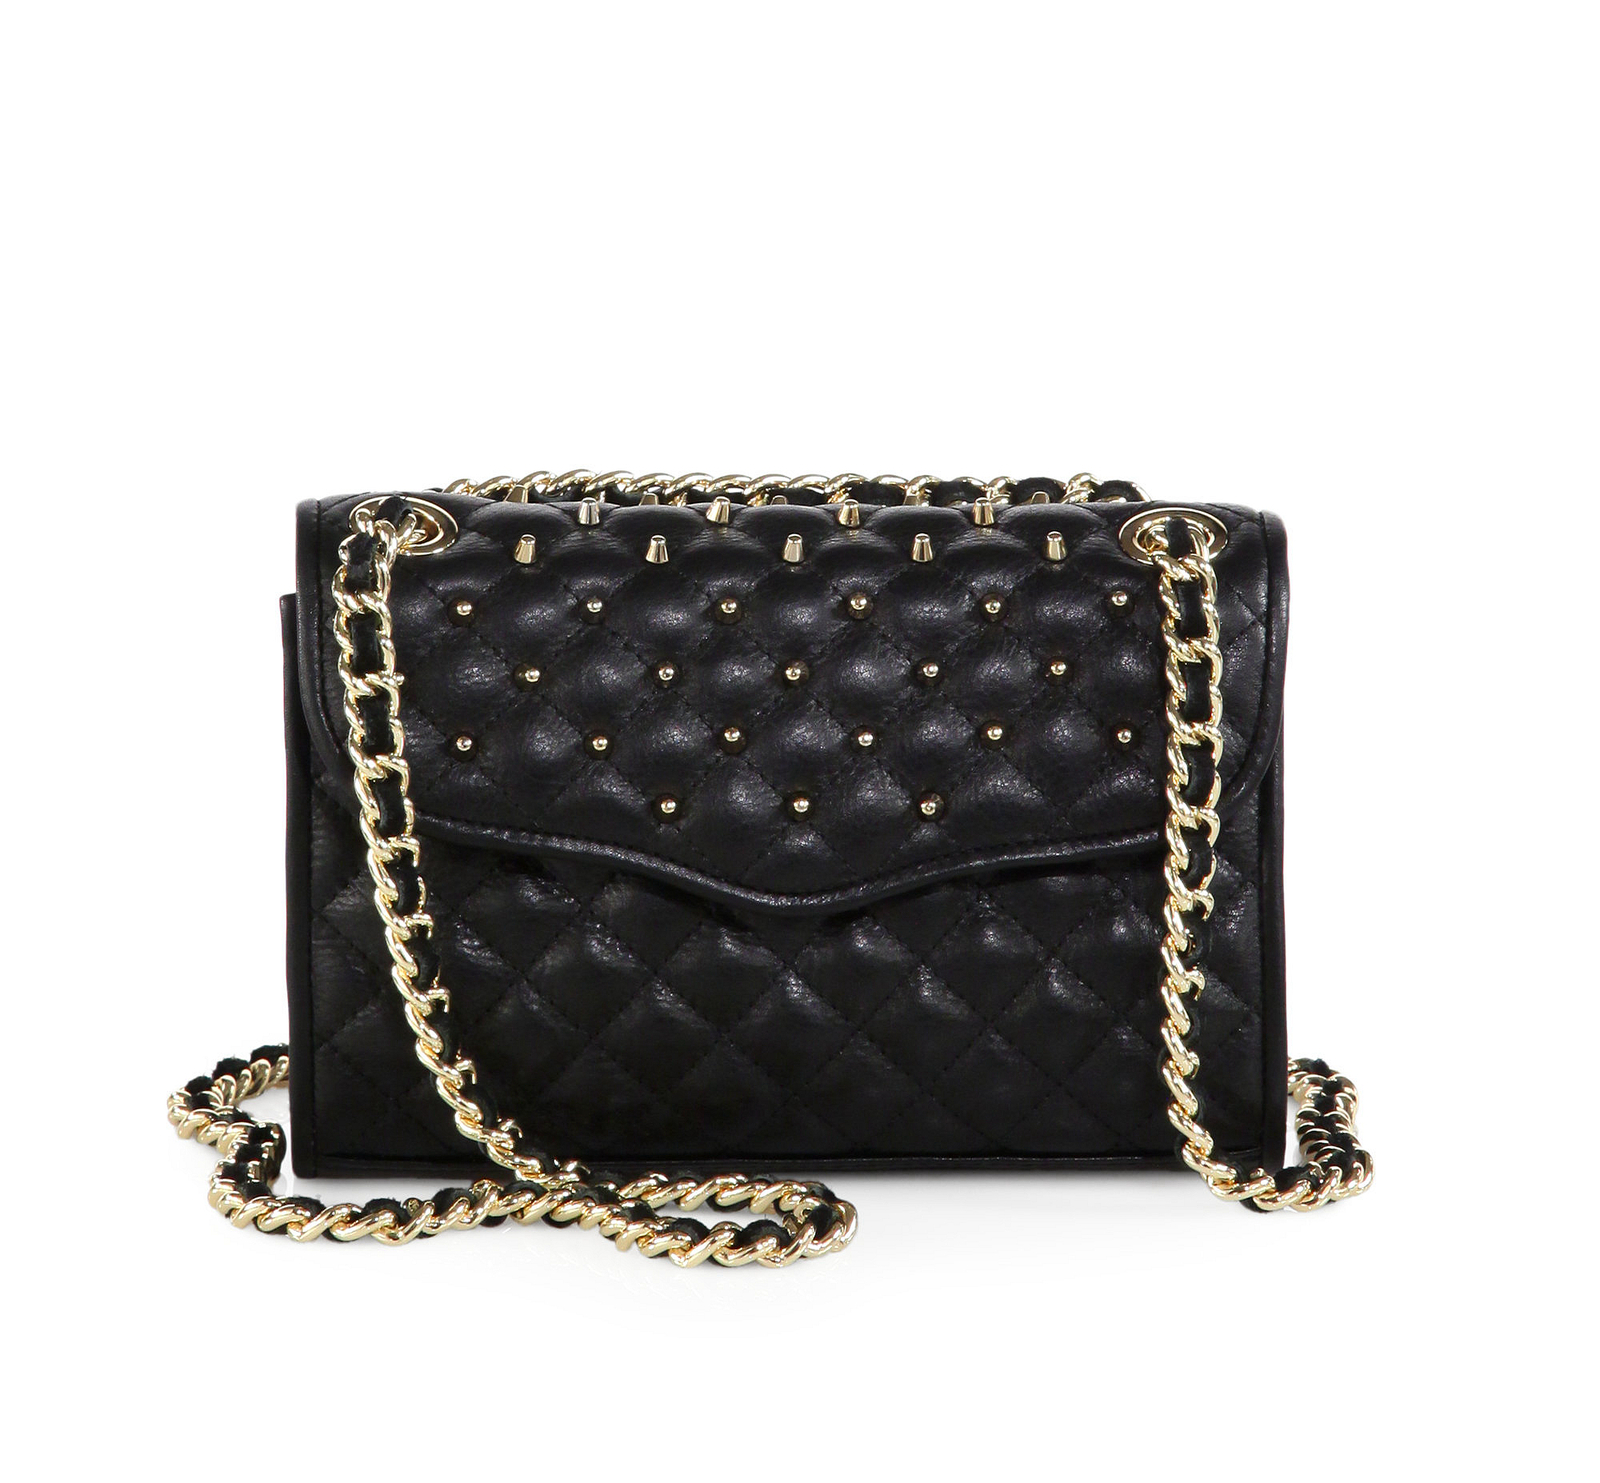 Nwt Rebecca Minkoff Studded Mini Affair Black Quilted